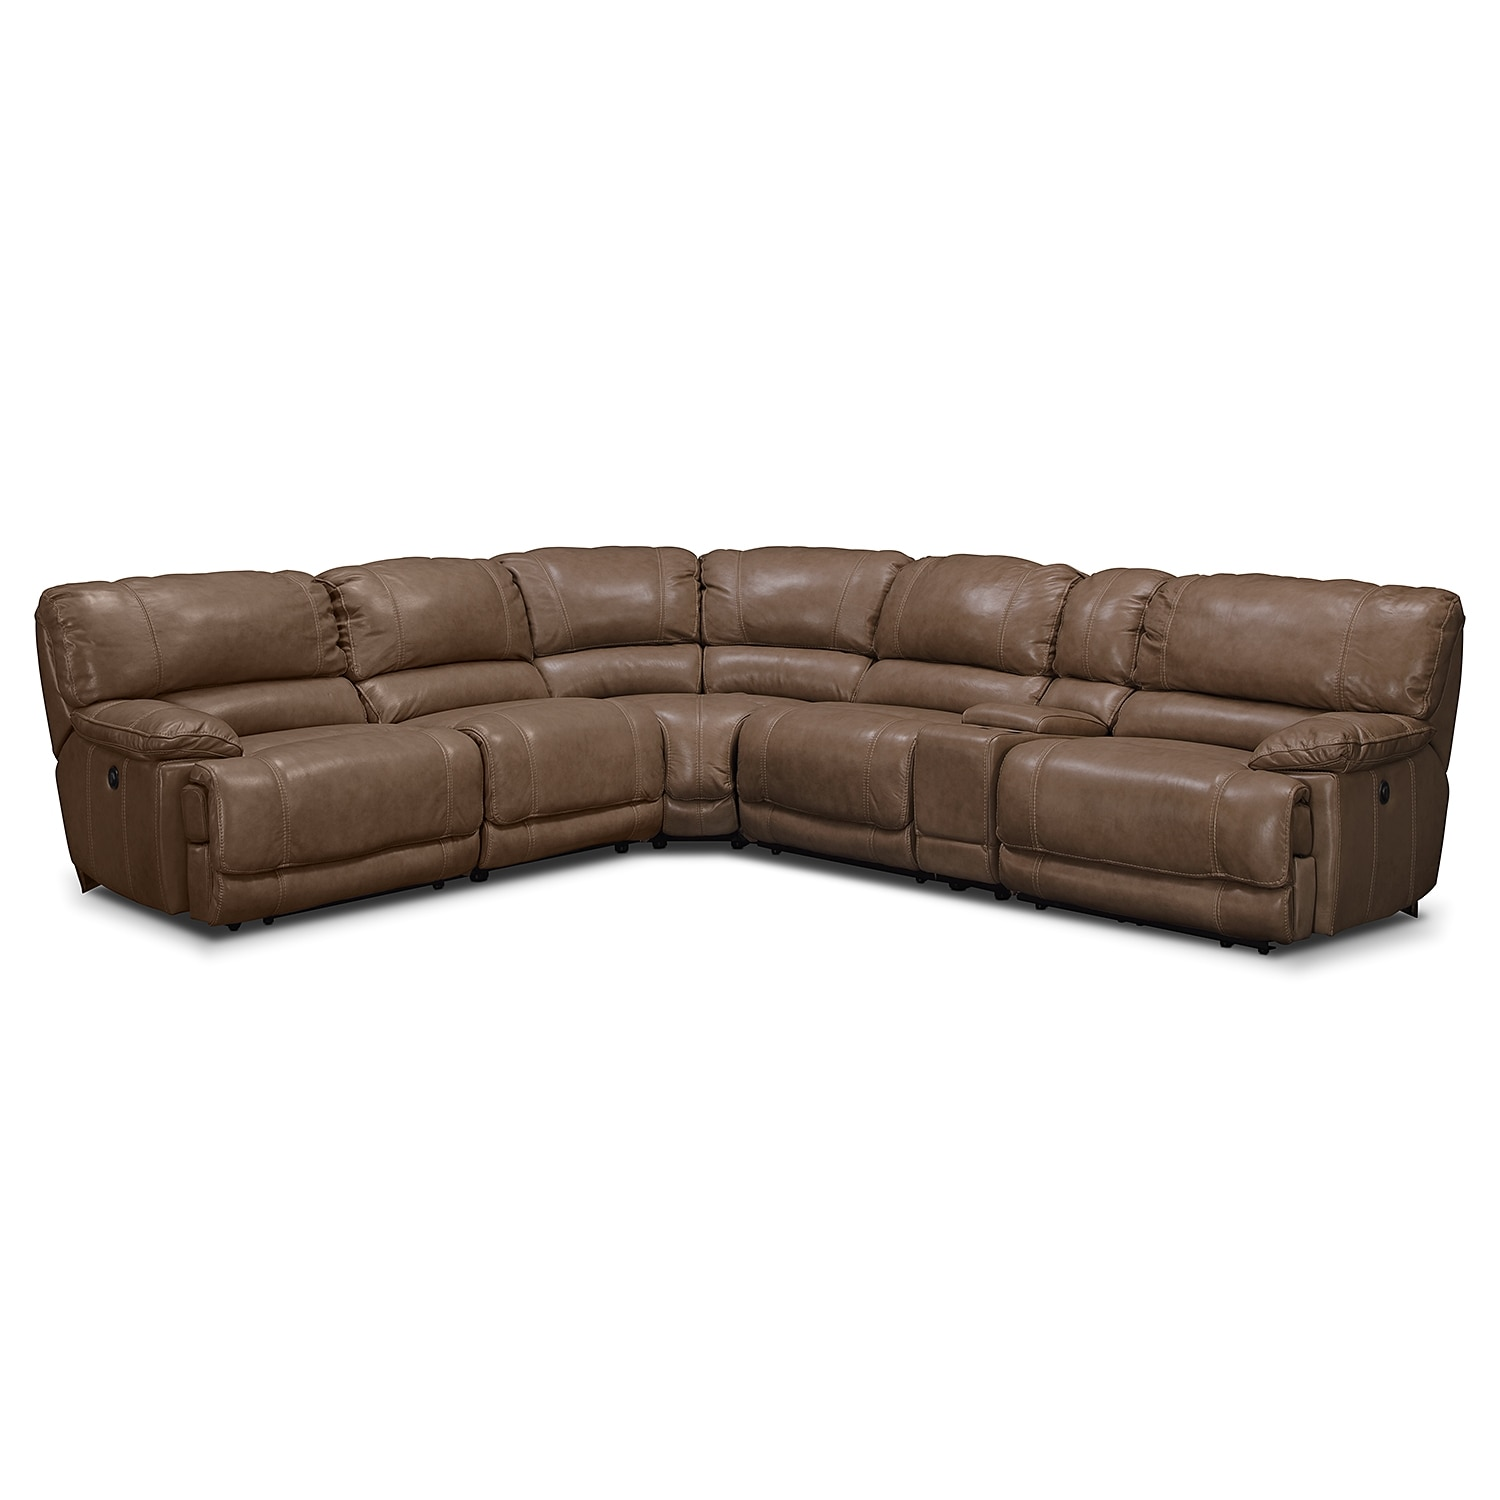 St malo power reclining sofa with console taupe value for Brighton taupe 3 piece chaise and sofa set